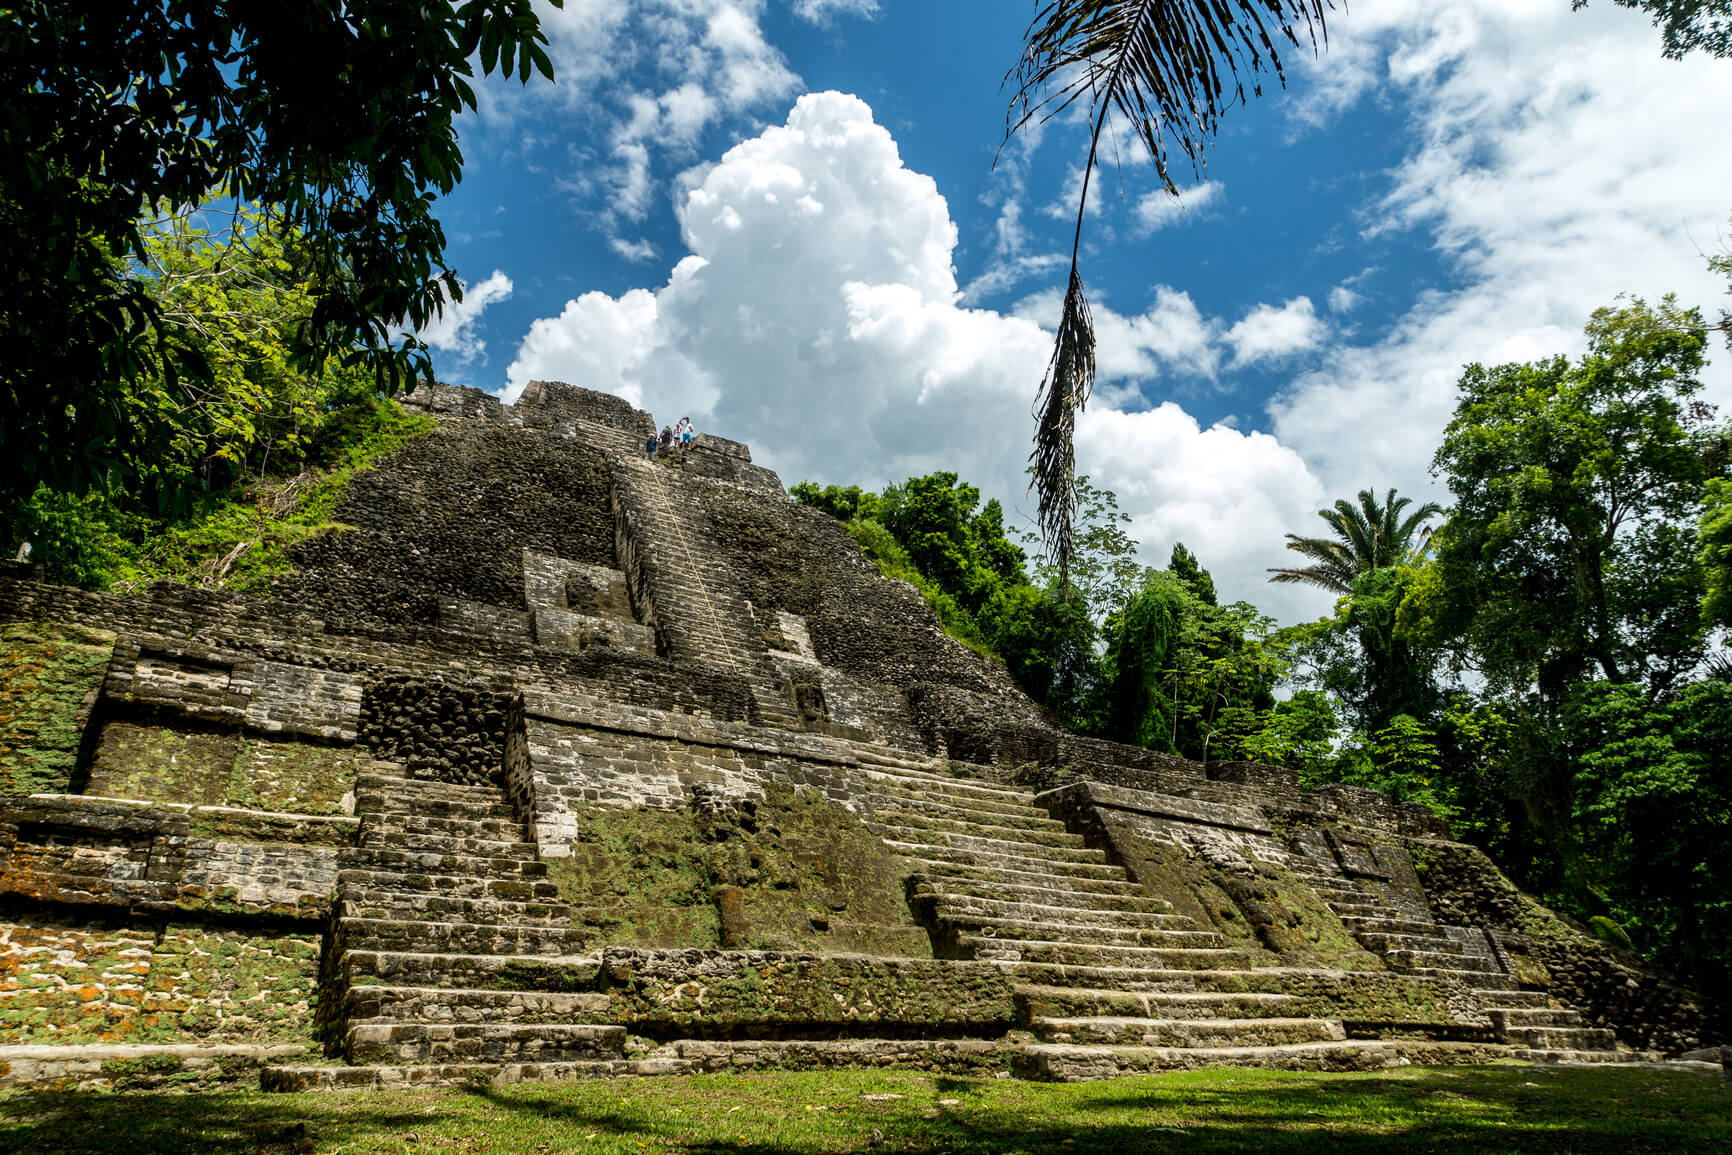 Non-stop from Miami to Belize for only $56 one-way (or $174 roundtrip)